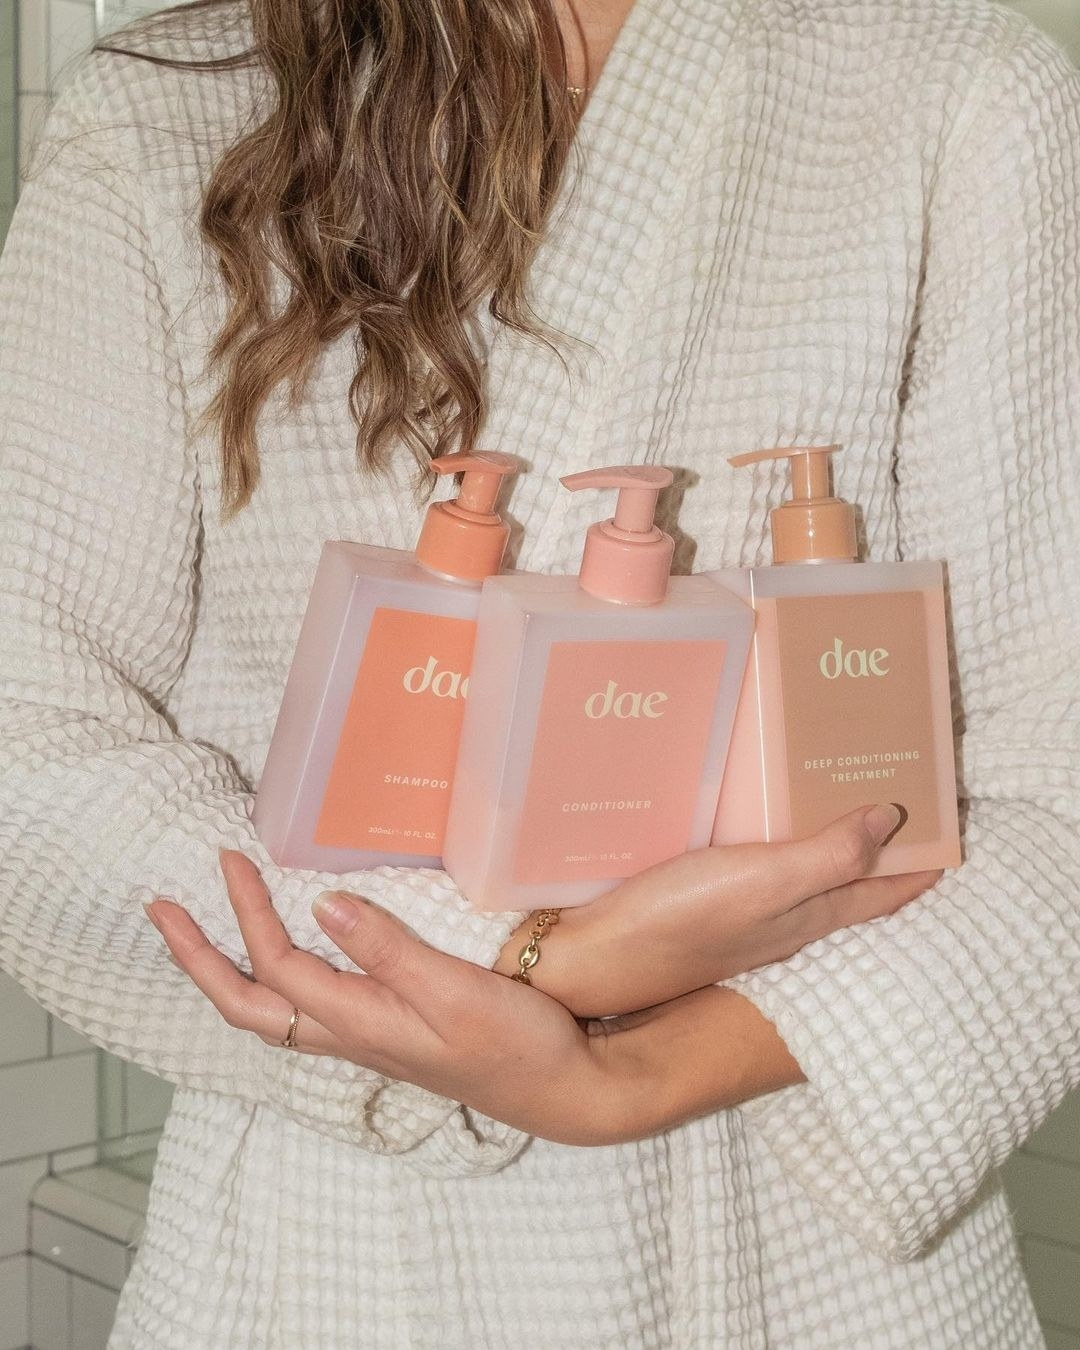 Person holding Dae hair care products